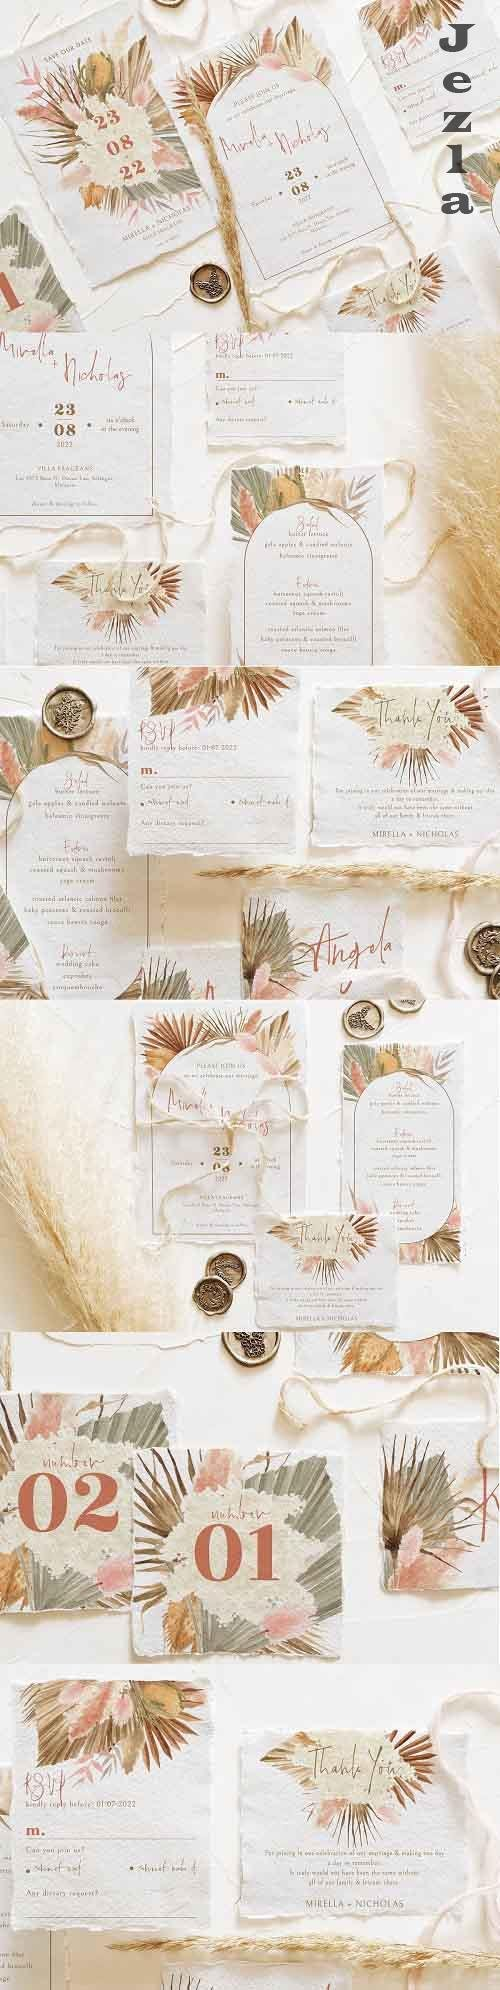 Bohemian Dried Foliage Wedding Suite - 5151657